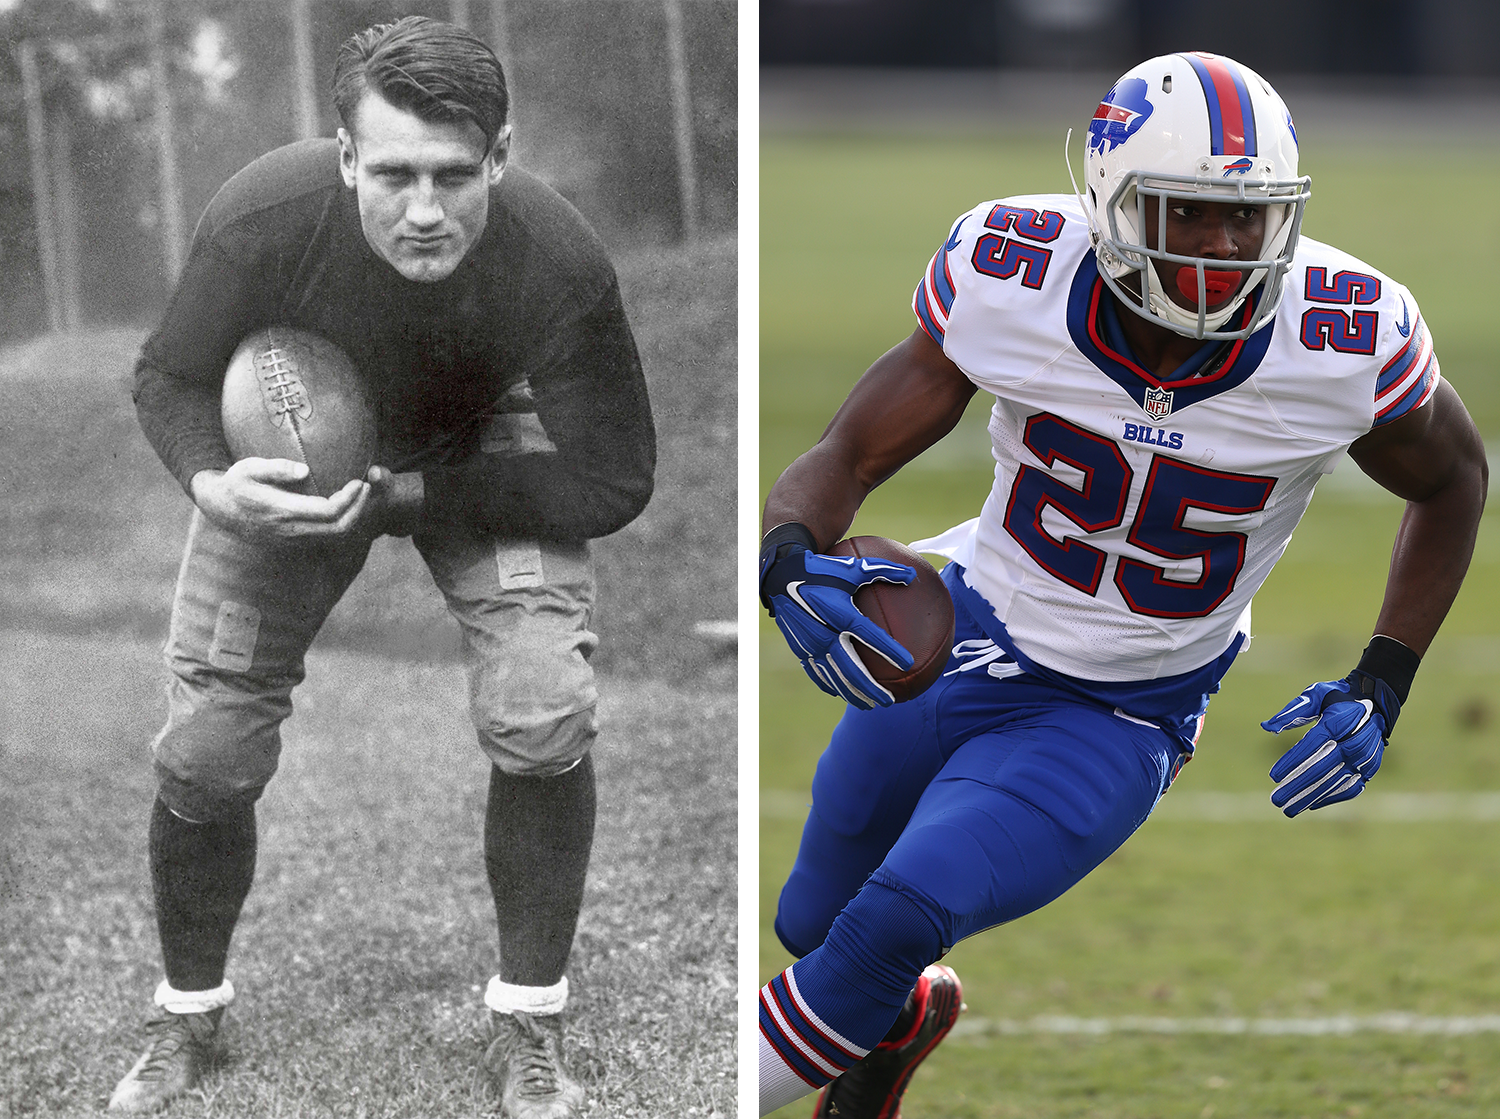 Evolution Of The Nfl Player Nfl Football Operations